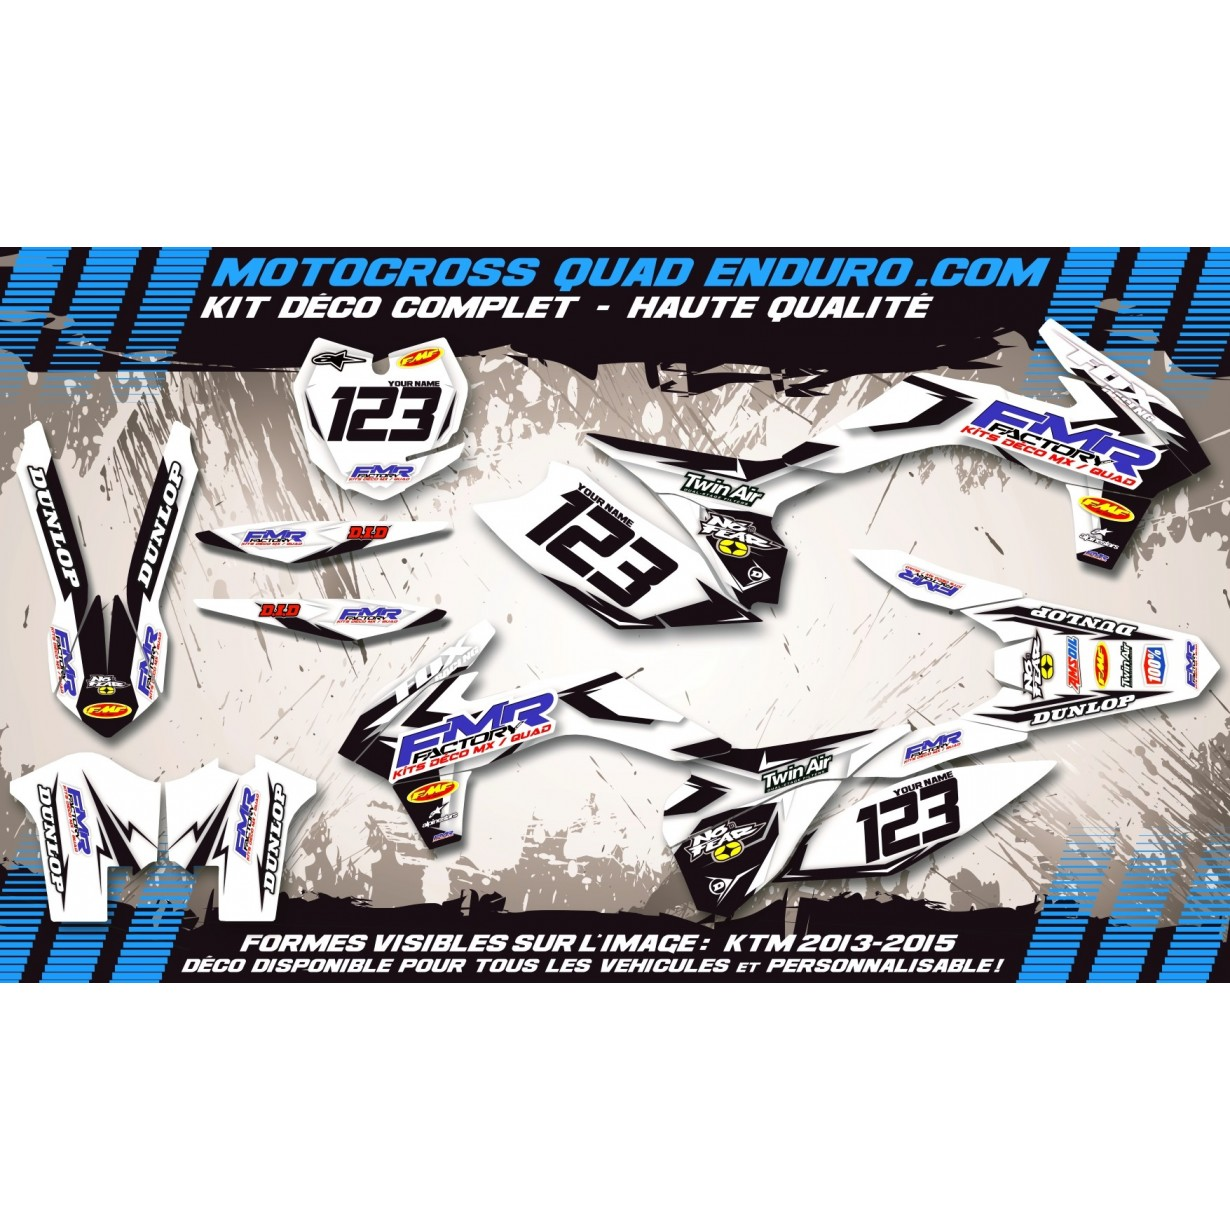 KIT DÉCO Perso CR-TC 125-250 00-04 Fmr factory WT Edition MA13WT